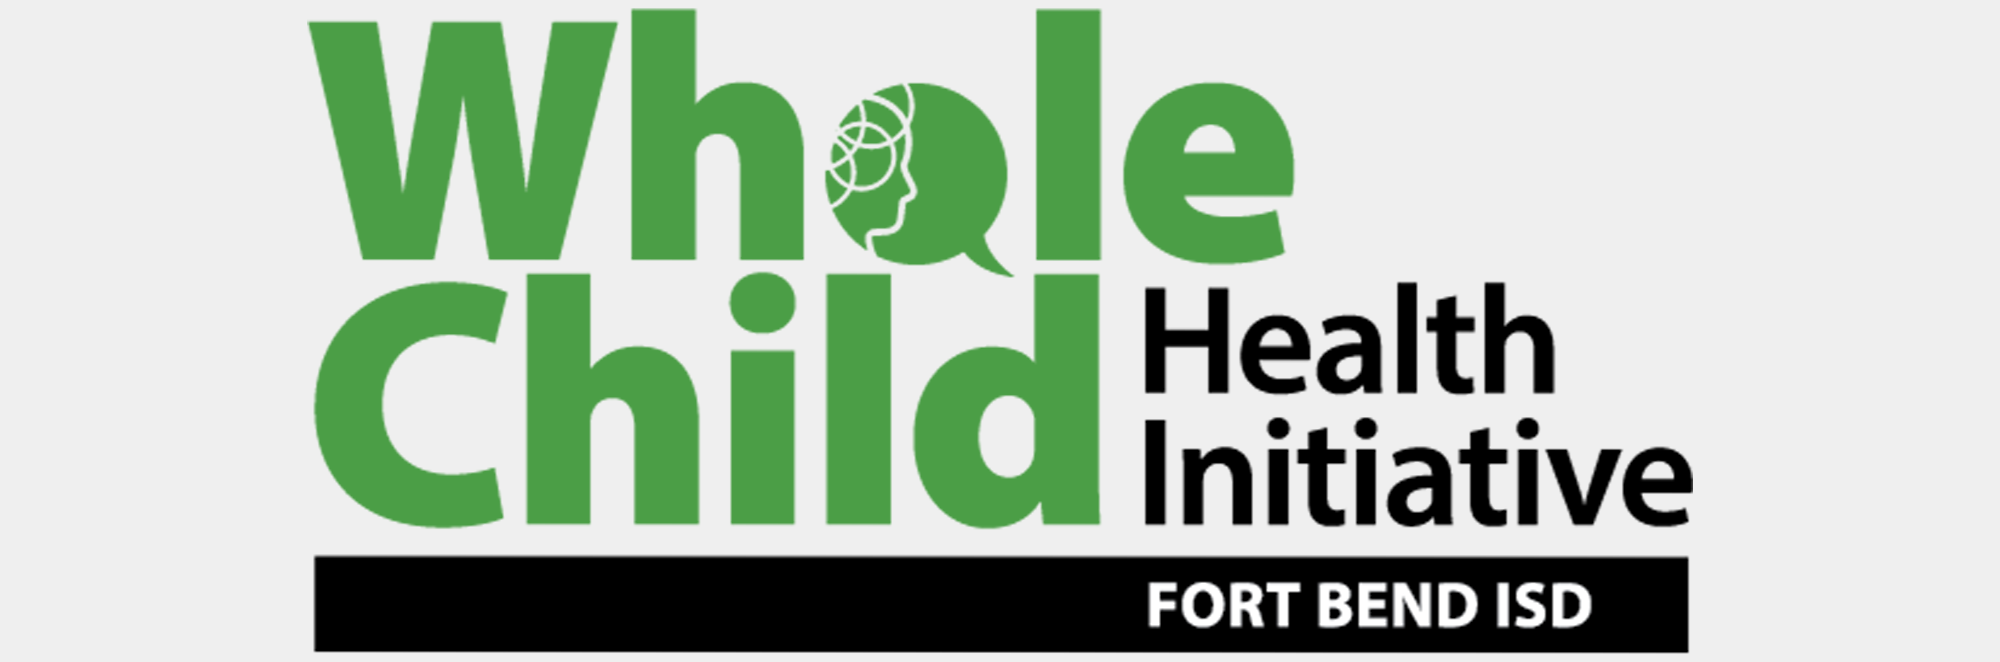 FBISD Whole Child Health Initiative Button